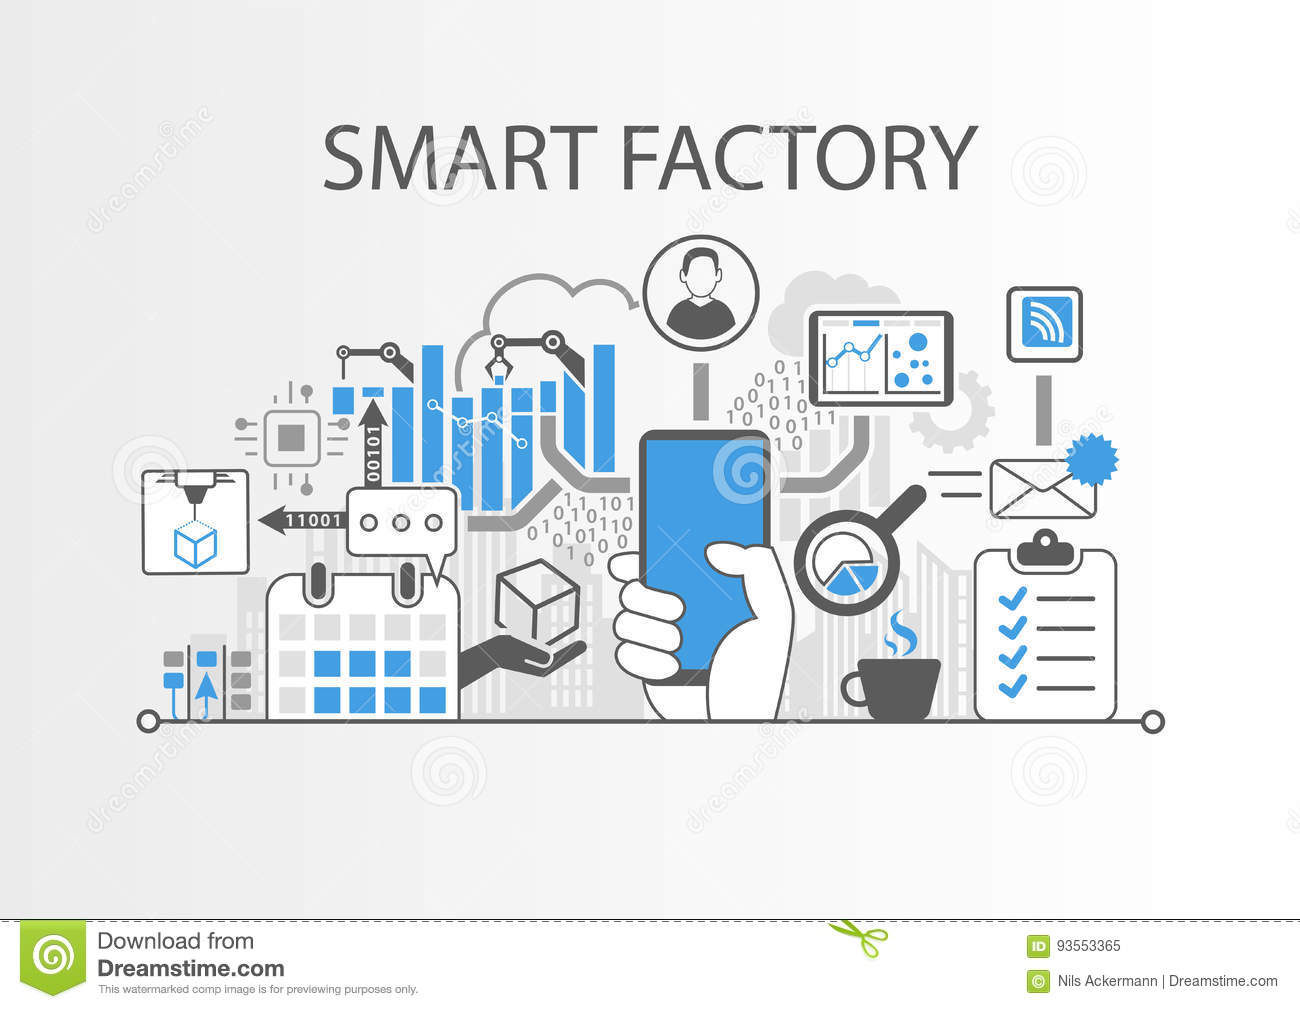 Industry 4 0 Iot Inter  Things Smart Manufacturing Concept furthermore Sonstige Leistungen Fuer Auslaendische Kunden Richtig Berechnen 1247 also 2011 together with List Of Powerpoint Topics furthermore Pattern Ppt Templates. on wireless robot ppt